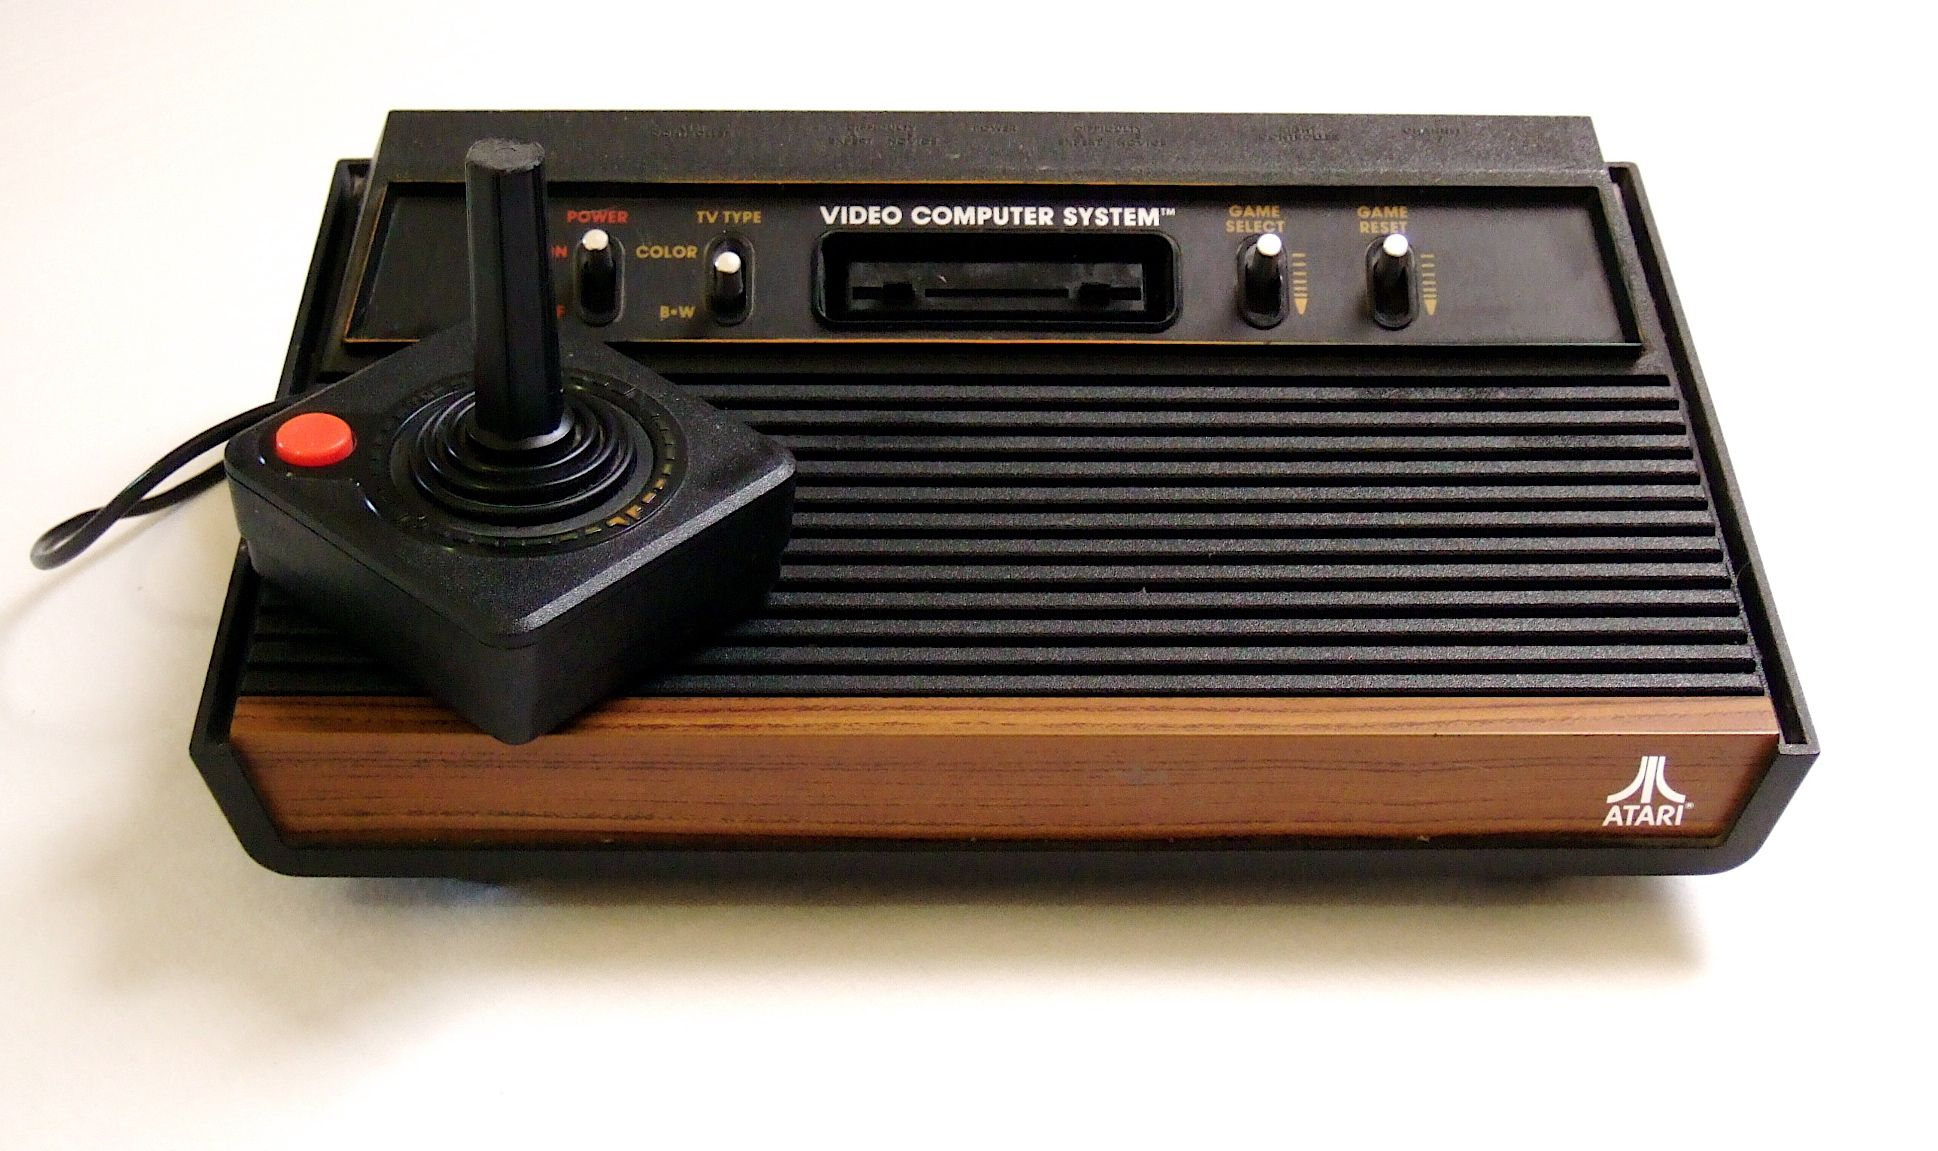 Atari video game console. This was the first console I ever had at home. I borrowed it from a friend (in exchange for my Star Wars AT-ST walker) and played Asteroids on it. (1938×1151)